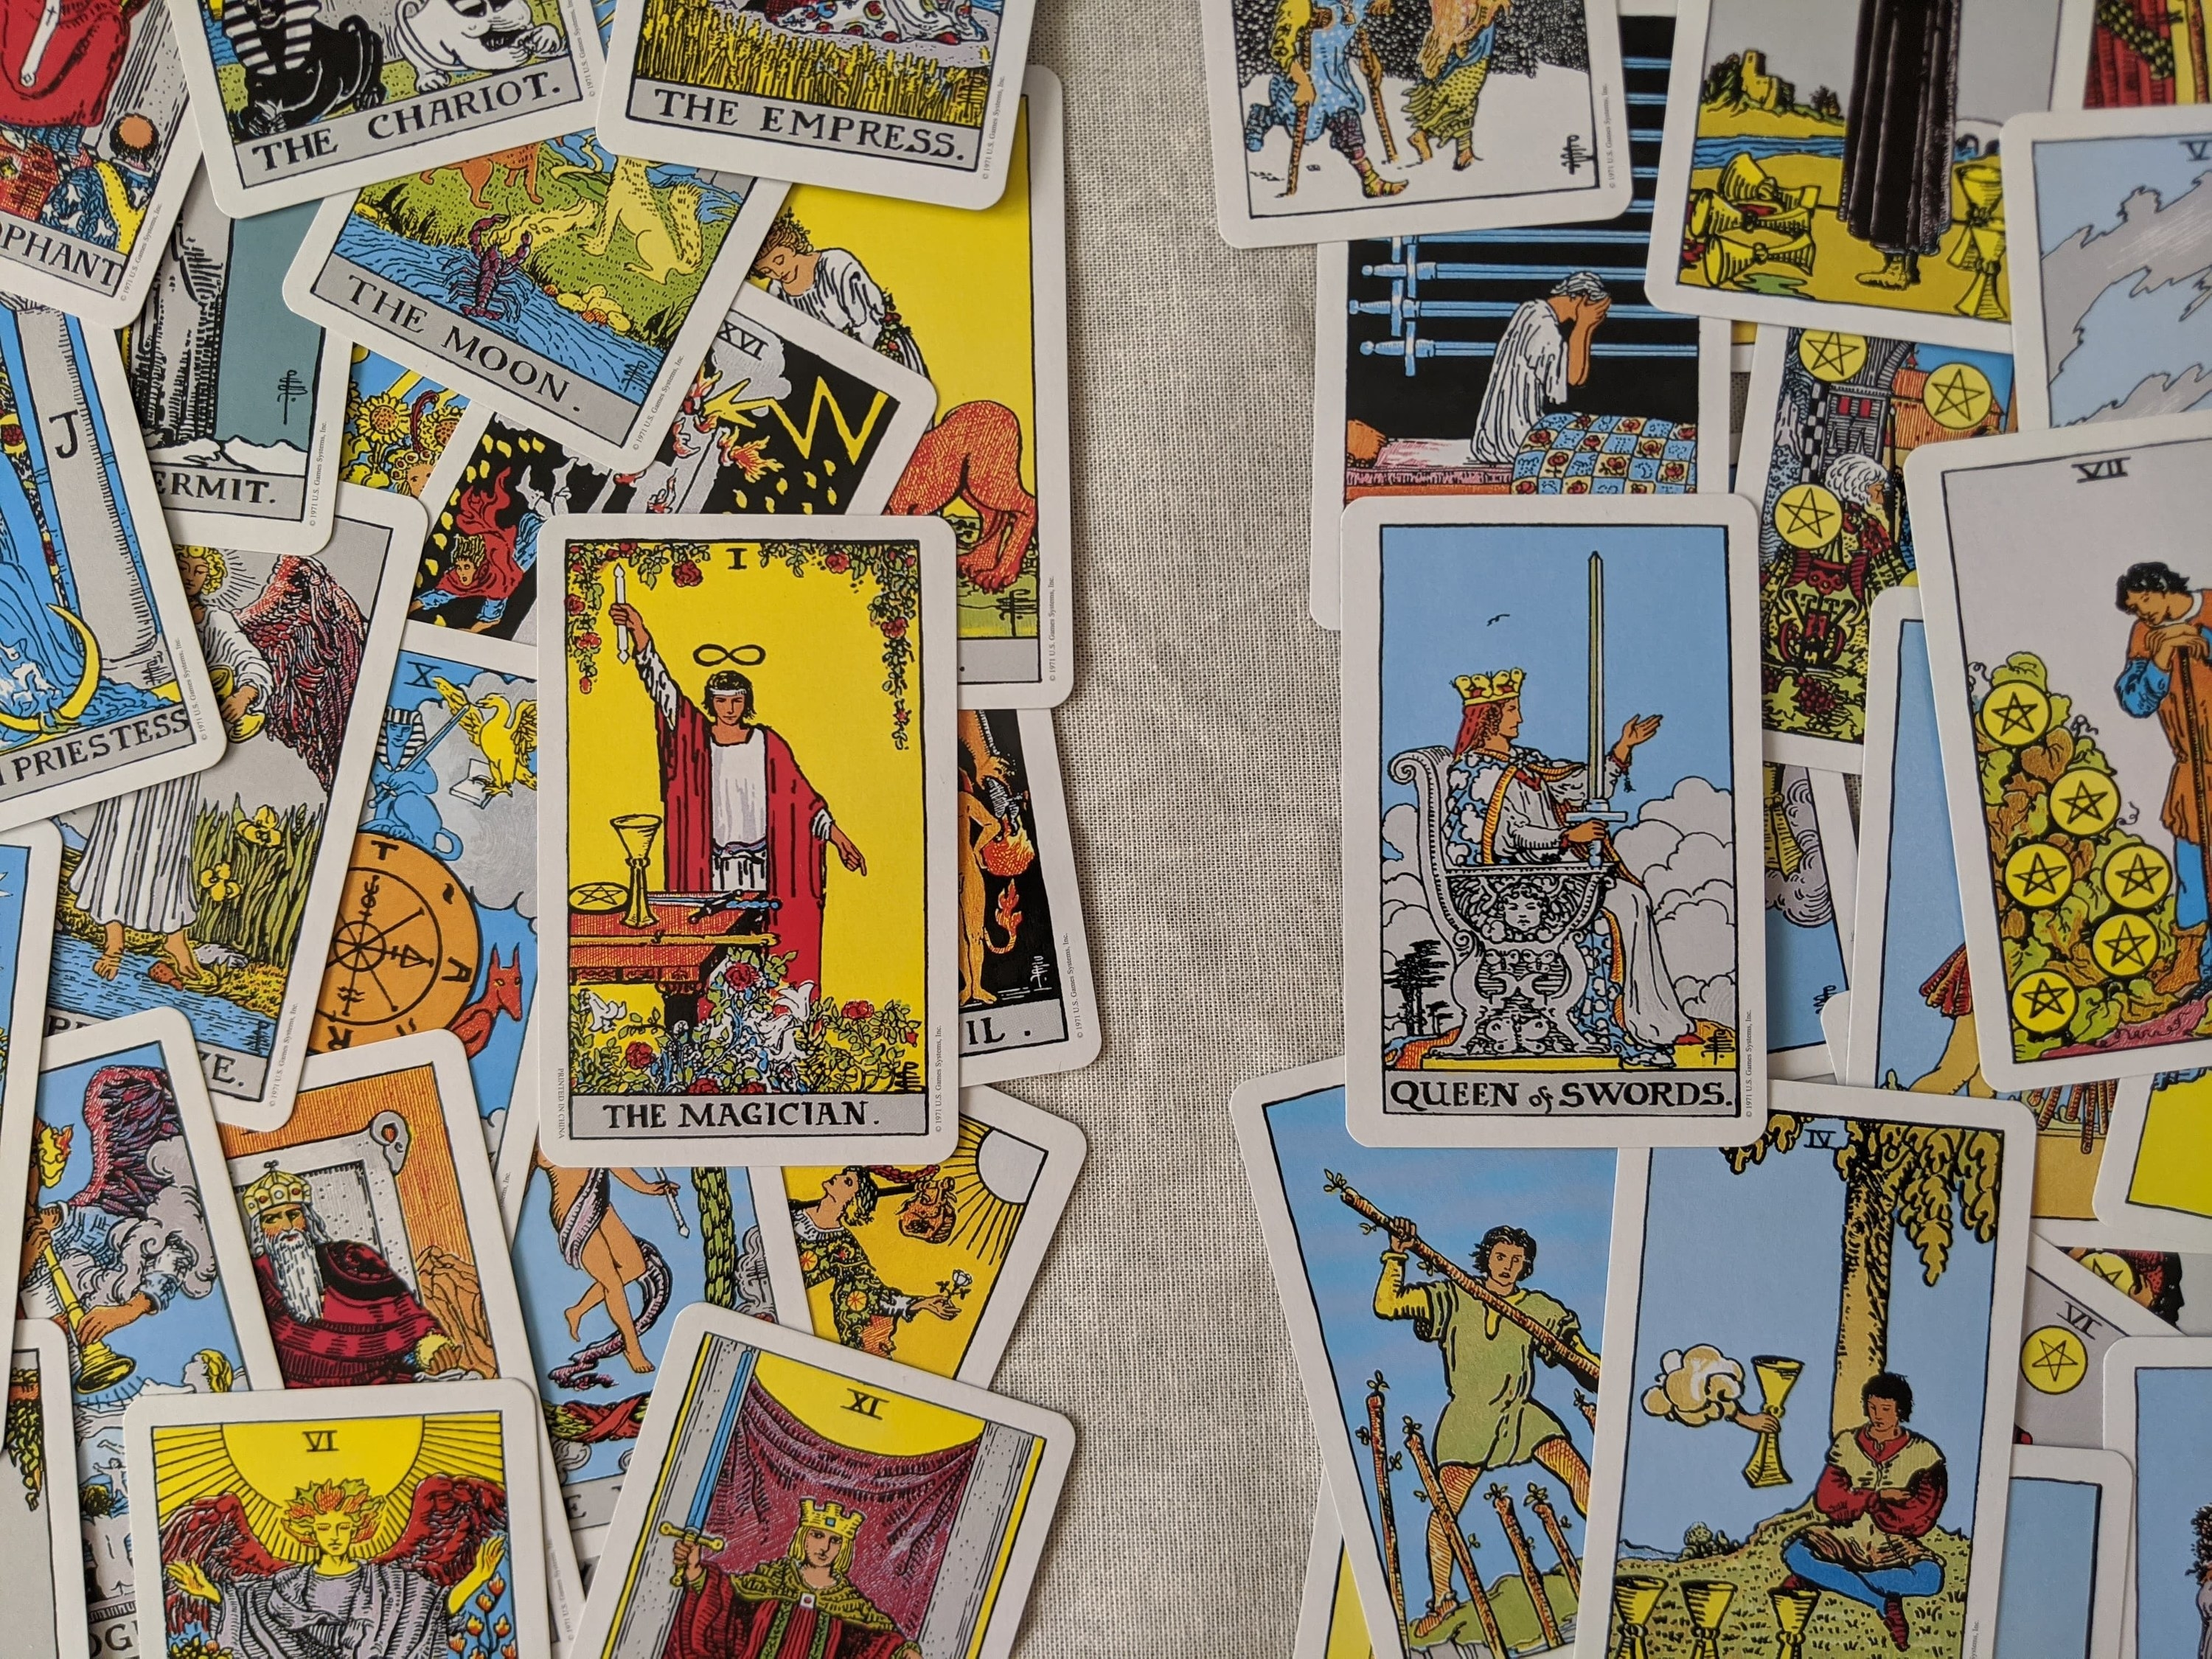 The cards of the Rider-Waite deck lay face up, divided with the Major Arcana cards on the left and Minor Arcana cards on the right